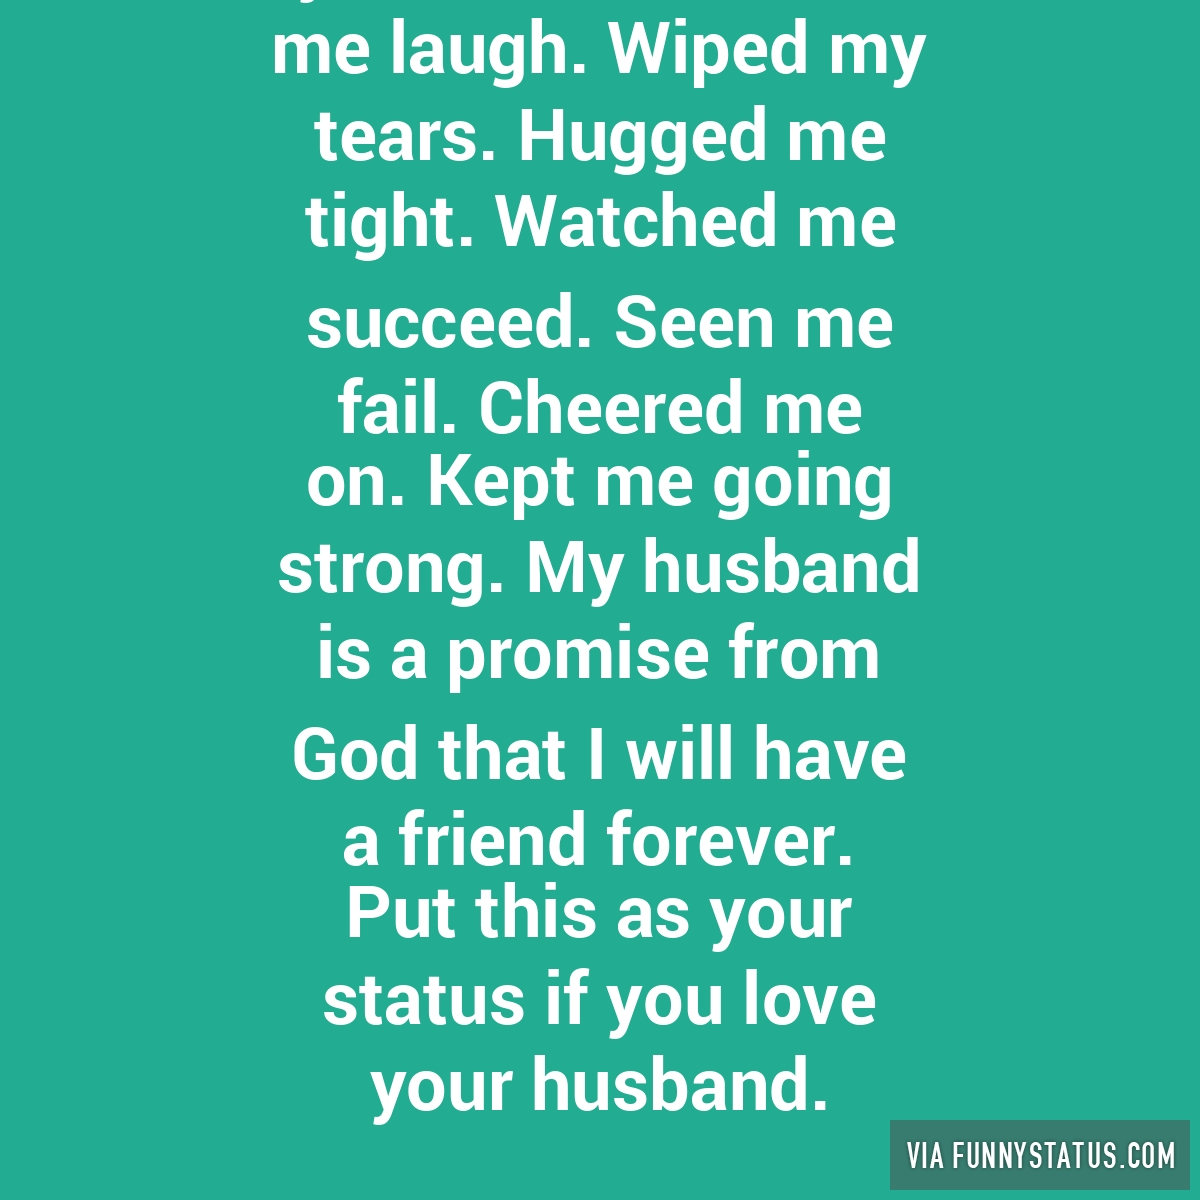 Funny Meme For My Husband : My husband has made me laugh wiped tears hugged